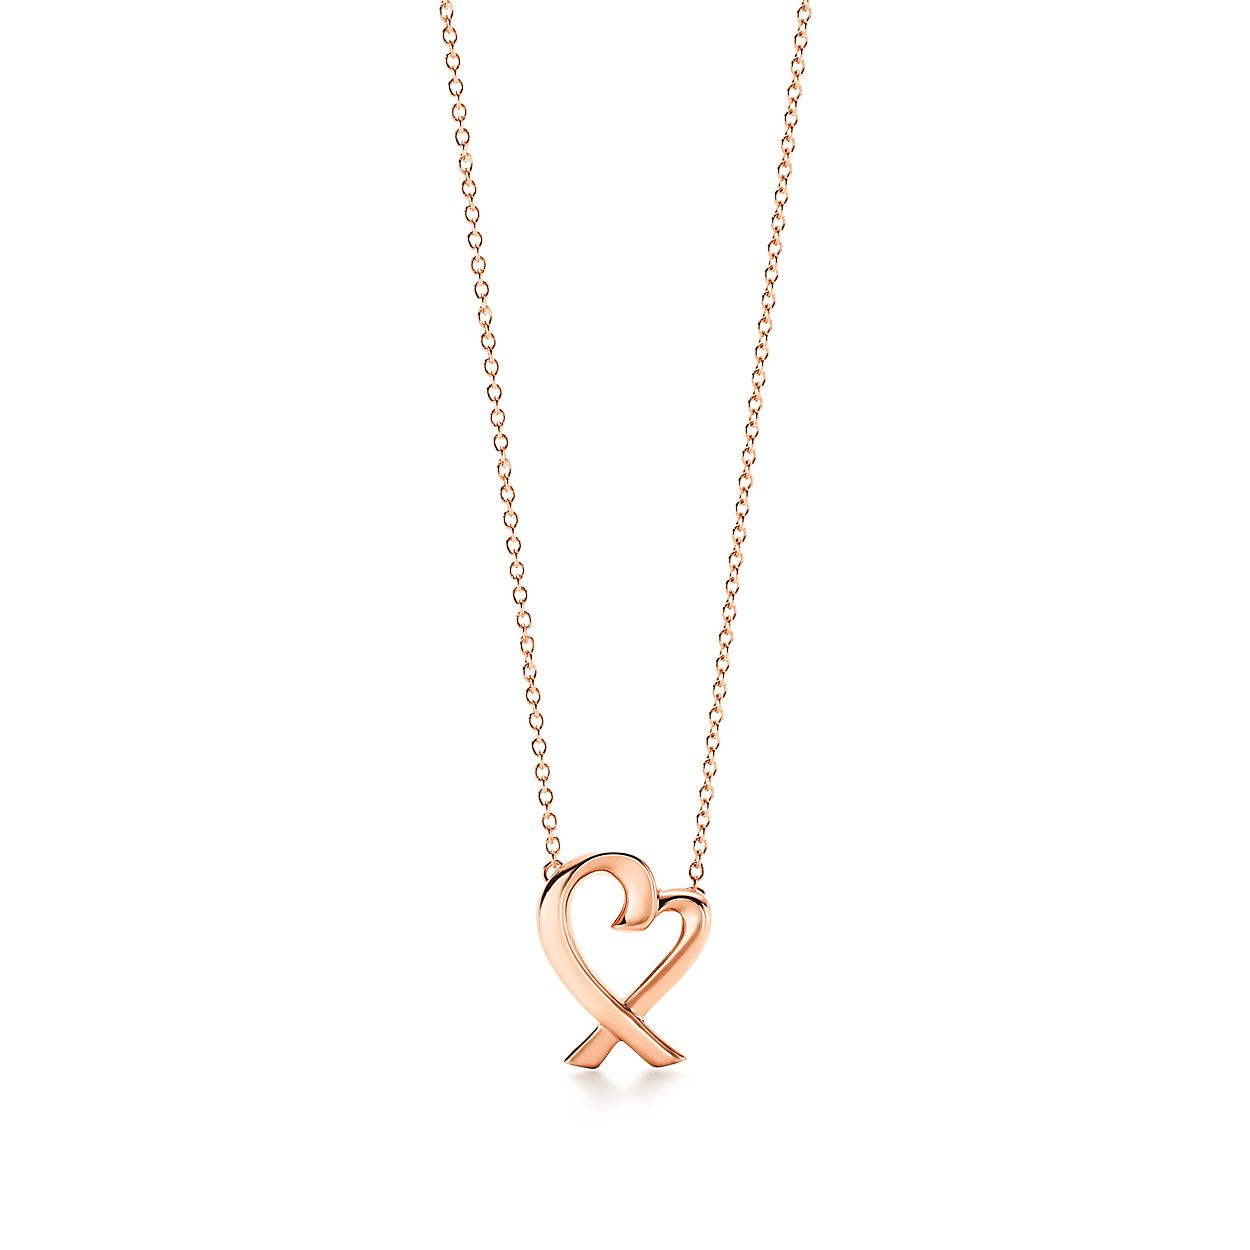 Paloma picasso loving heart pendant in 18k rose gold small paloma picassoloving heart pendant aloadofball Gallery